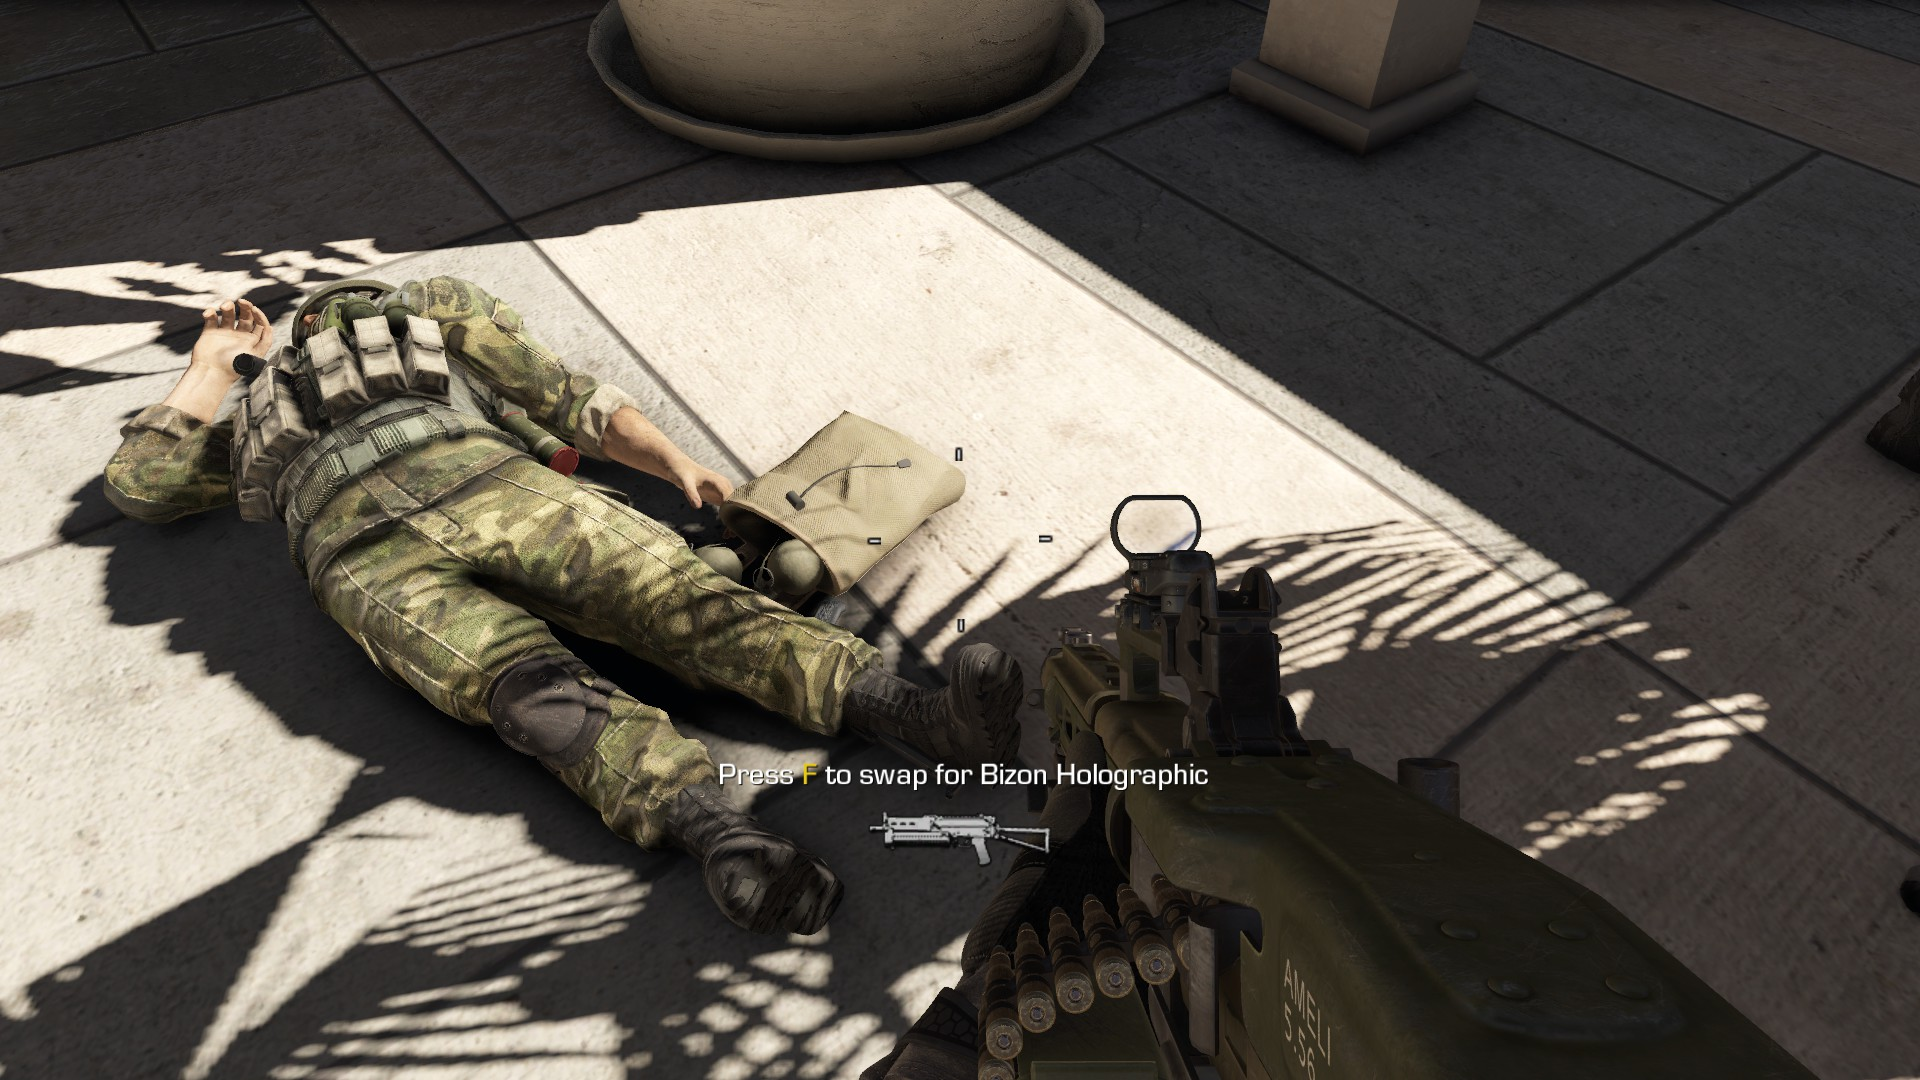 http://www.imfdb.org/images/0/04/CodGhosts-Ameli-1.jpg